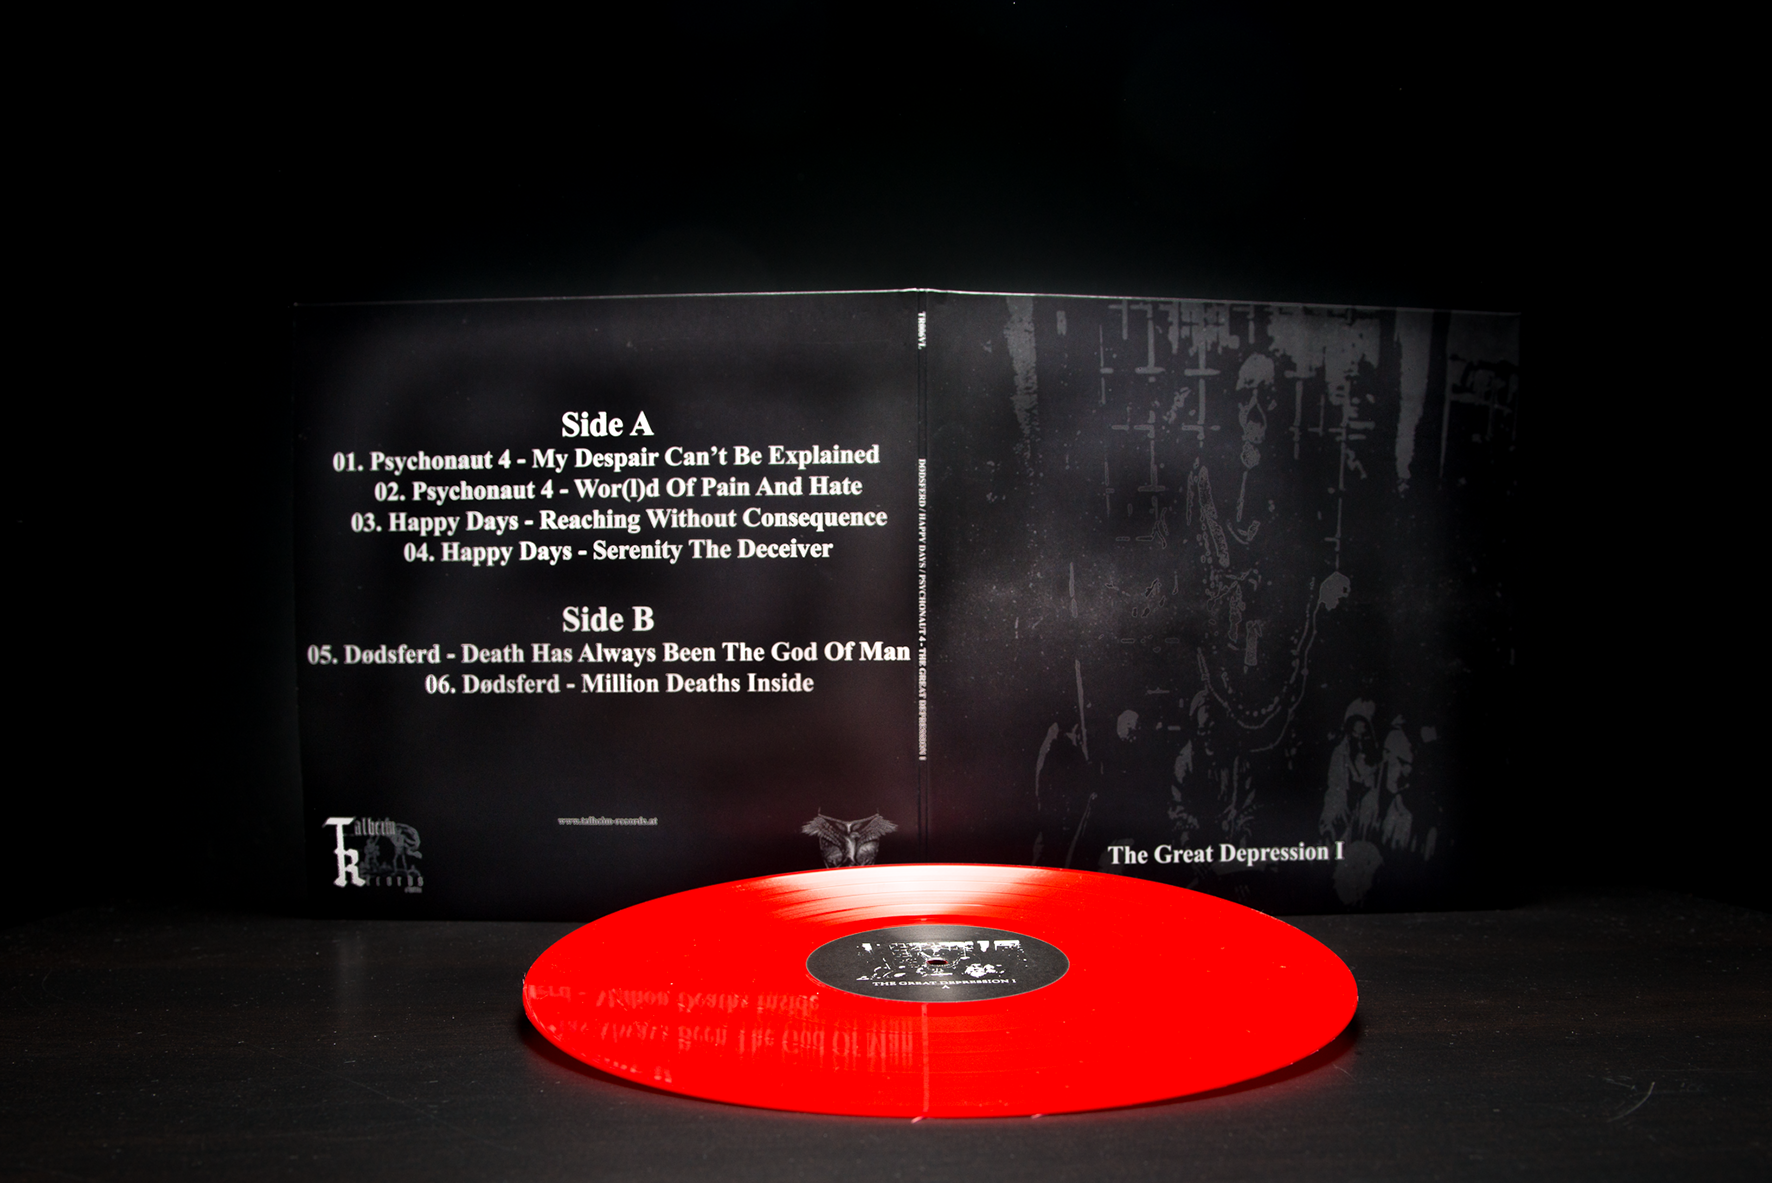 Dødsferd / Happy Days / Psychonaut 4 - The Great Depression I LP Gatefold Red